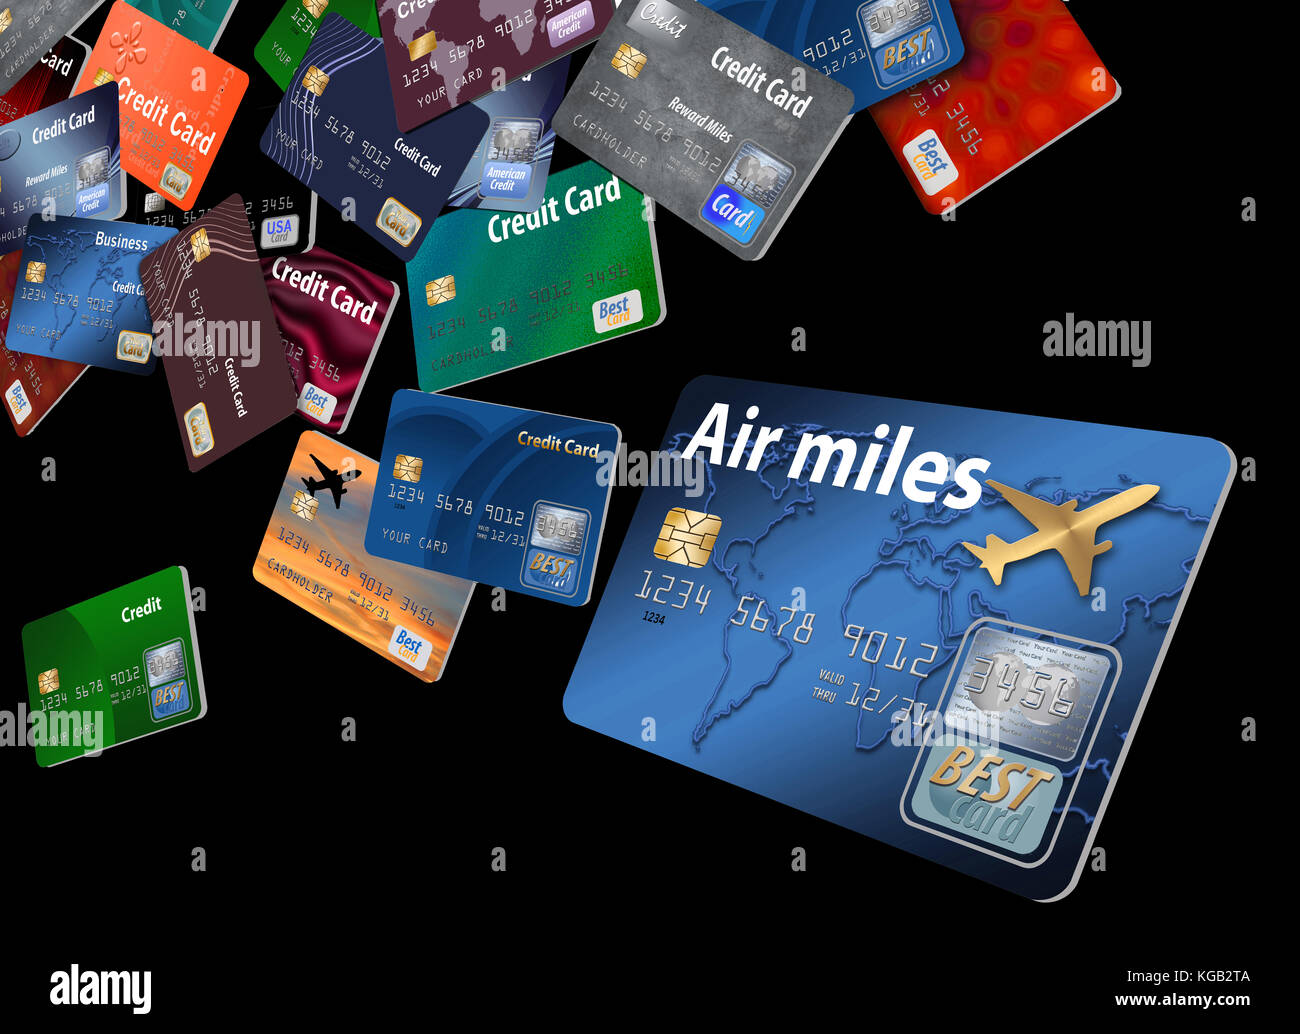 Business air miles credit card images free business cards cards flying stock photos cards flying stock images alamy dozens of credit cards floating and flying magicingreecefo Gallery